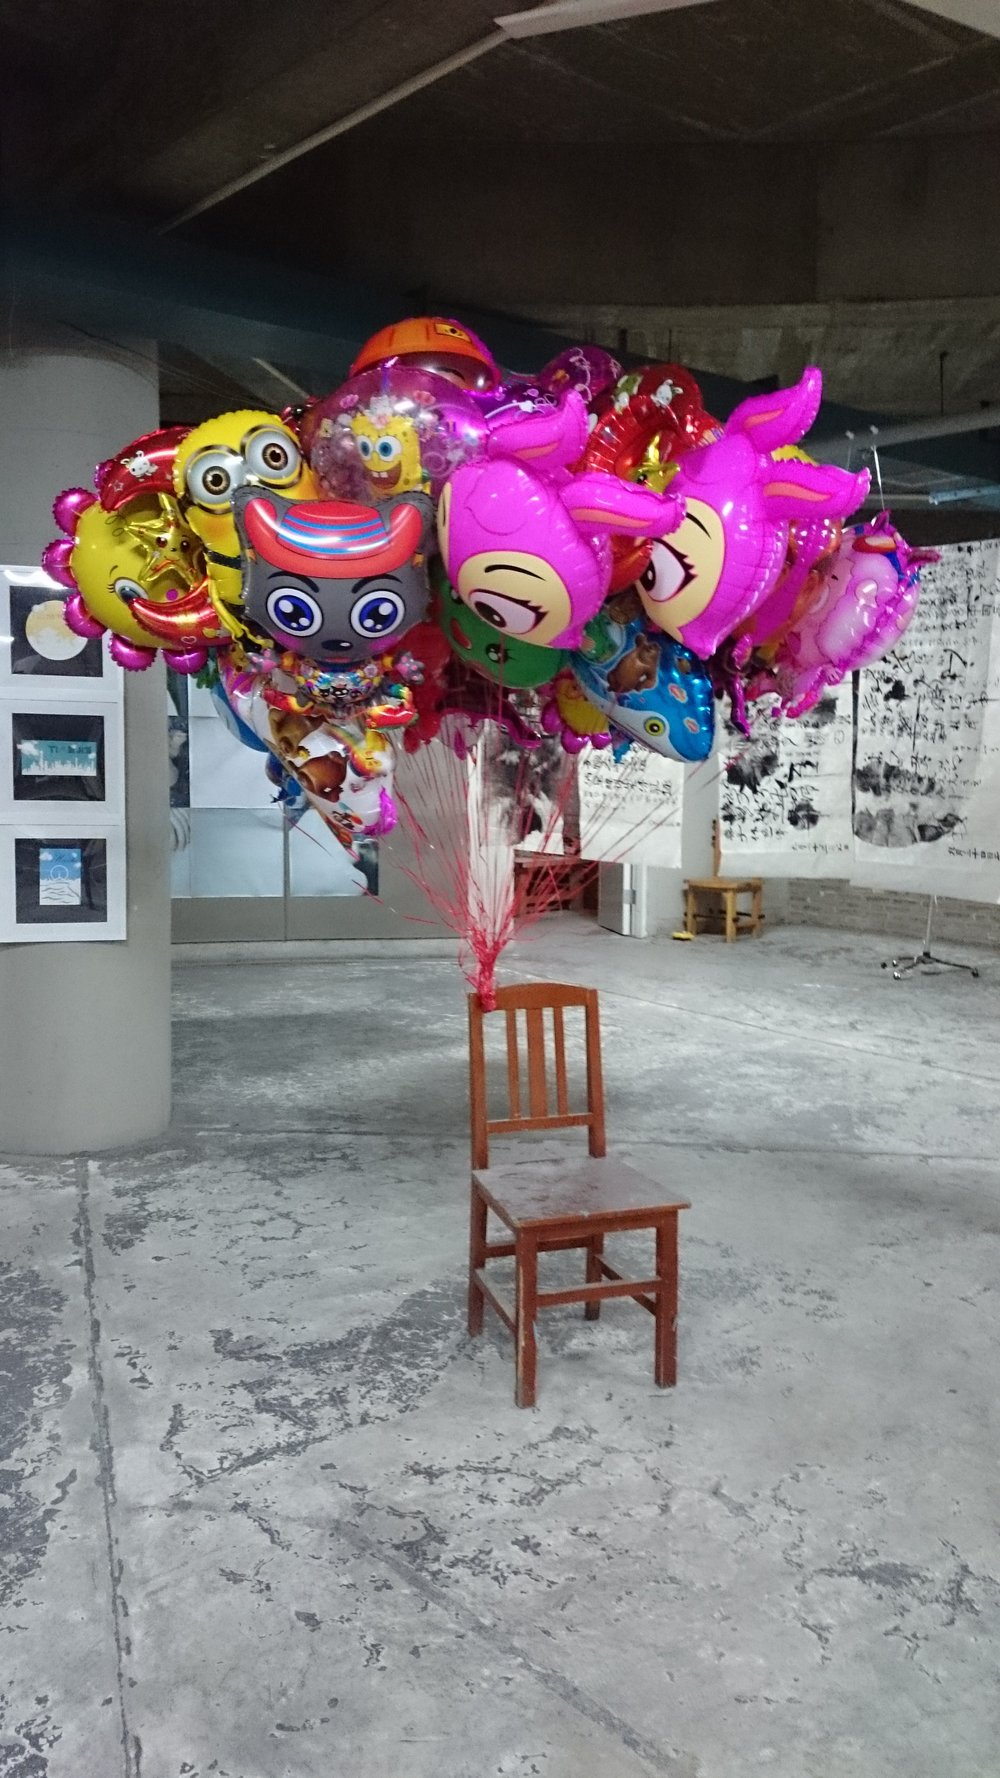 Collaboration with Nerida Bourne, 2014, Variable Dimensions, Balloons and Chair, Exhibited at TAFA Gallery in China